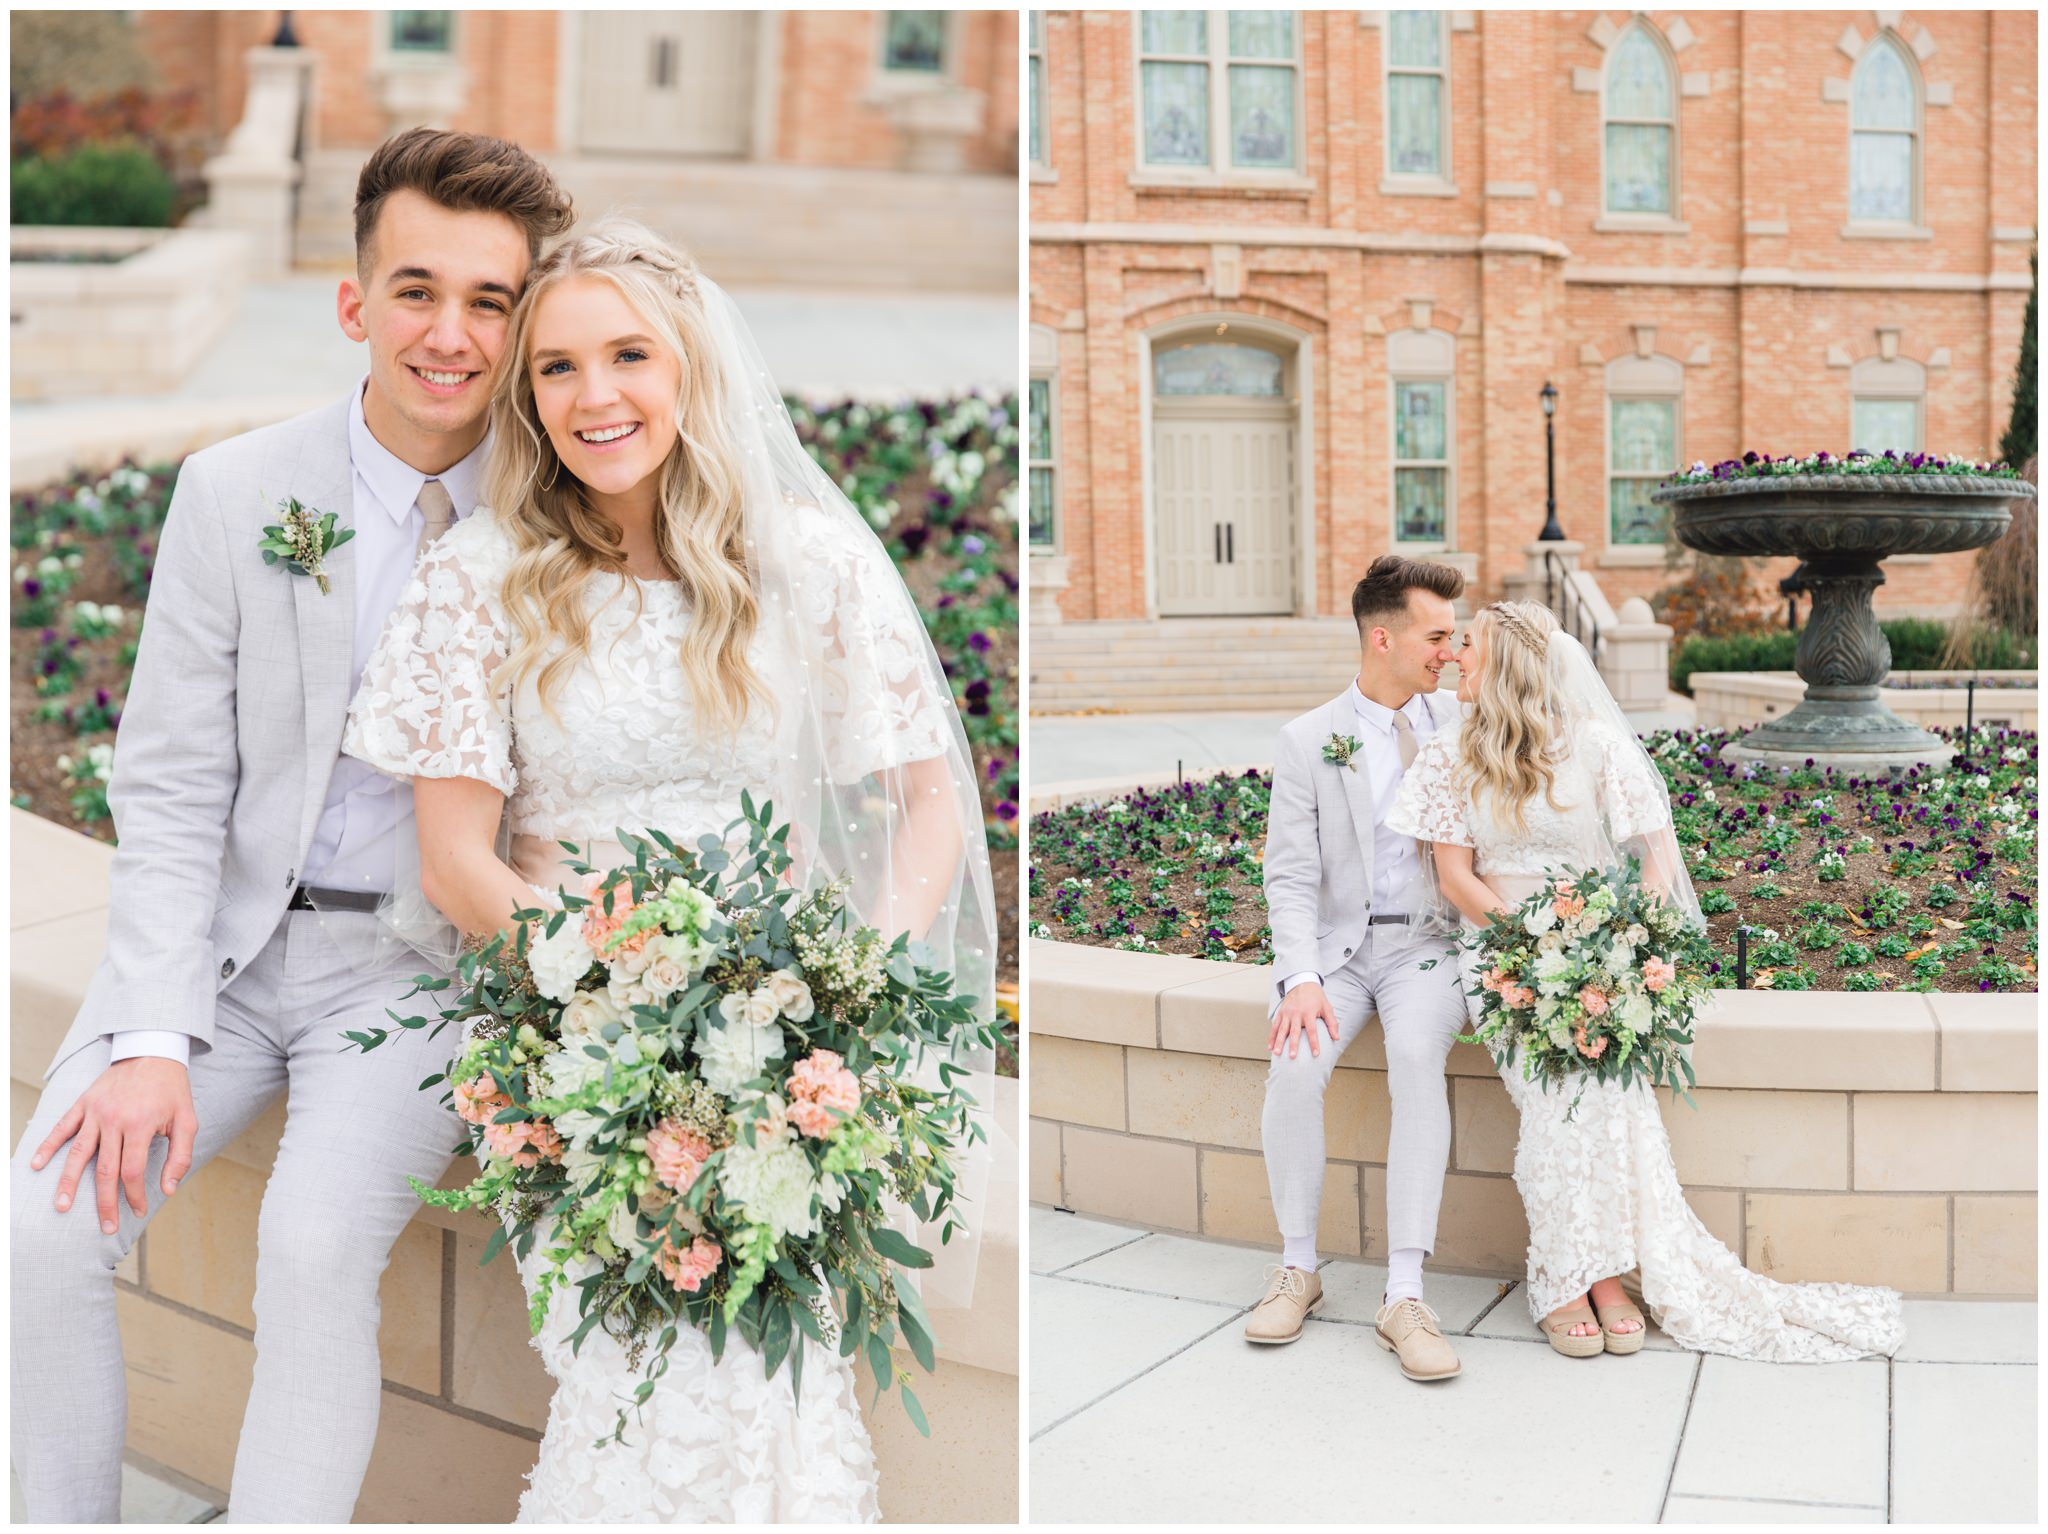 Bride and Groom near a bed of flowers at the Provo City Center Temple in Utah